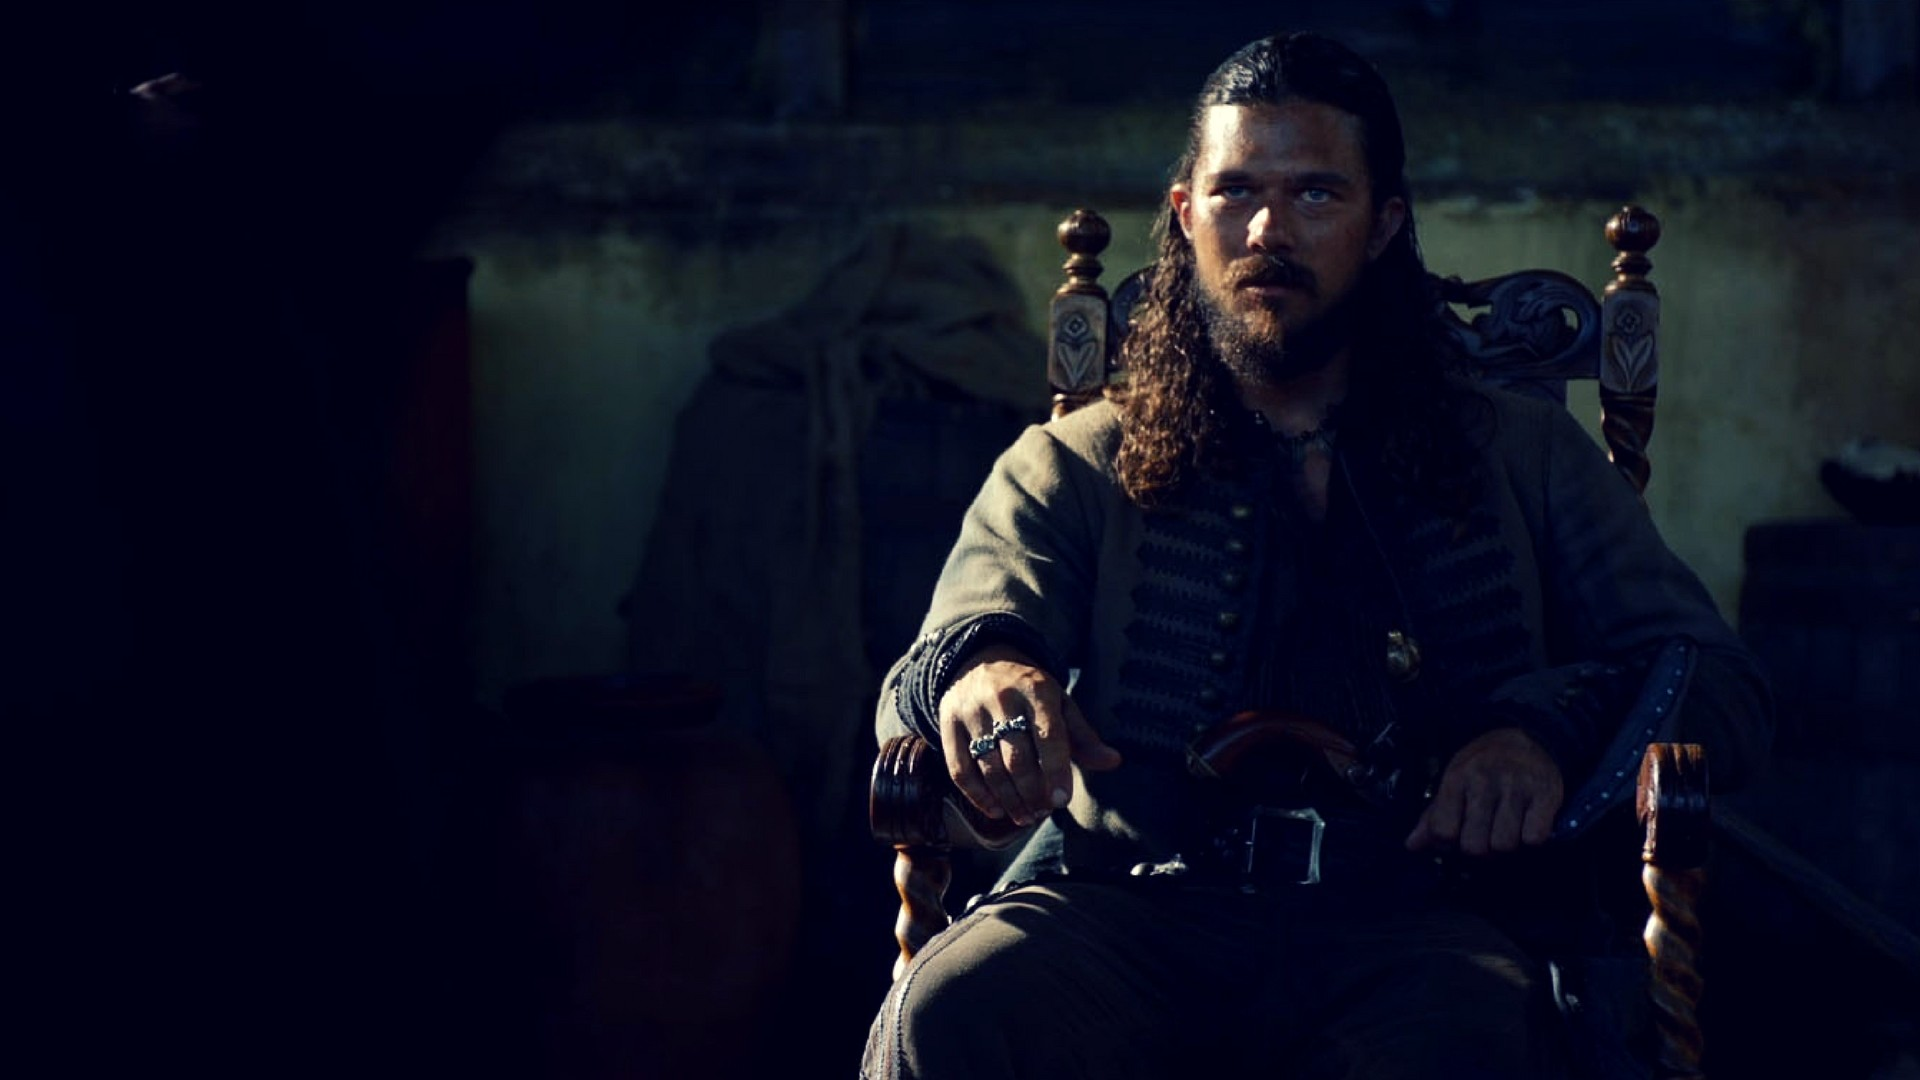 Edward Low Black Sails Wallpapers by Buford Roberts #13